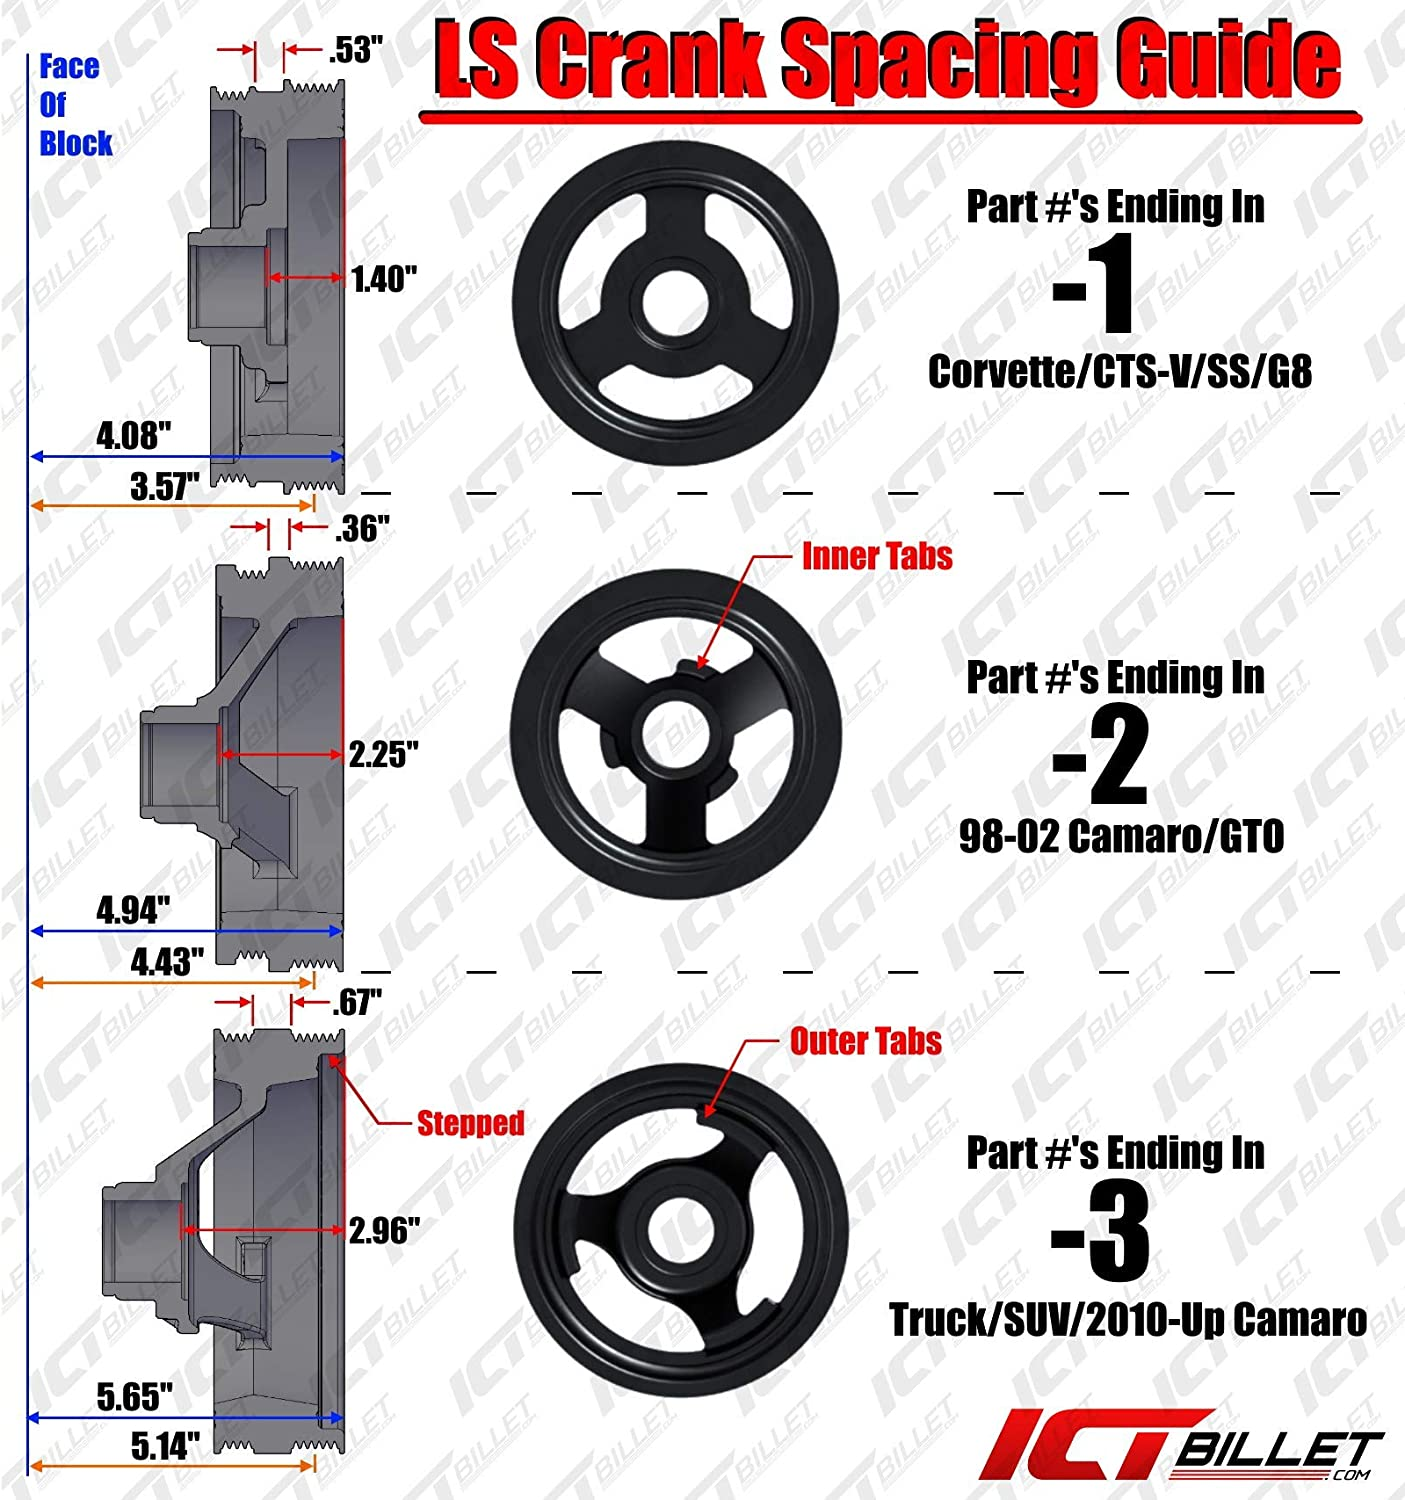 ICT Billet LS1 Camaro Turbo Power Steering Pump Bracket kit for turbo headers Compatible with 1998 to 2002 LS1 Camaro Power Steering Pump /& Pulley Designed /& Manufactured in the USA 551581-2